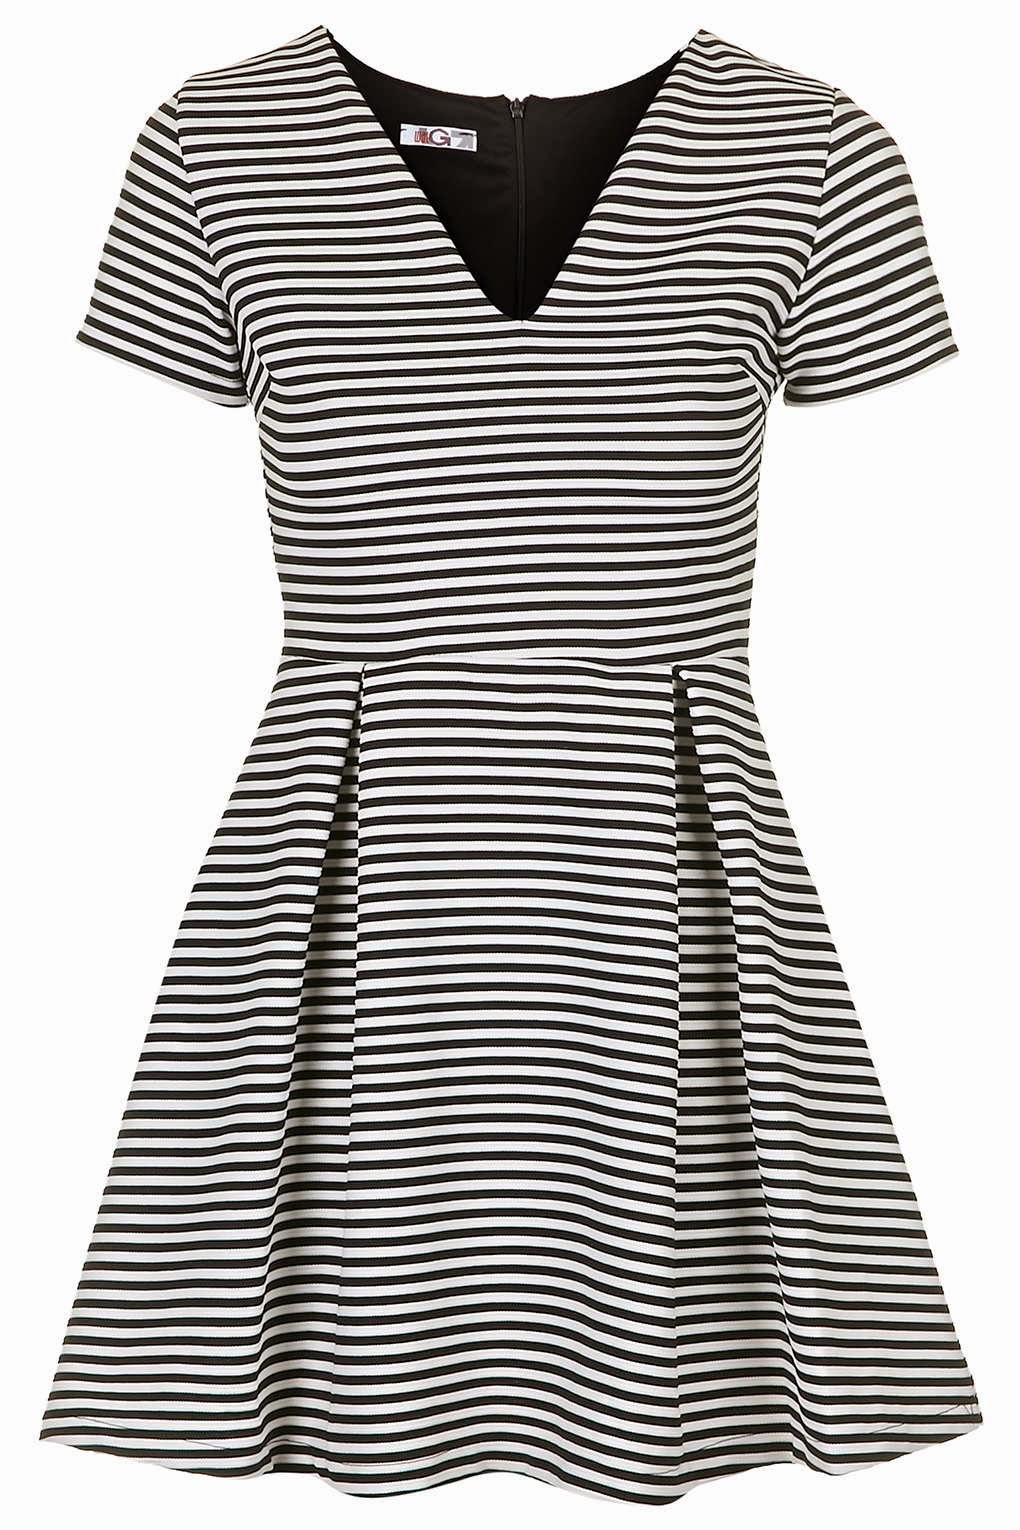 black white striped skater dress, striped WAL G dress,